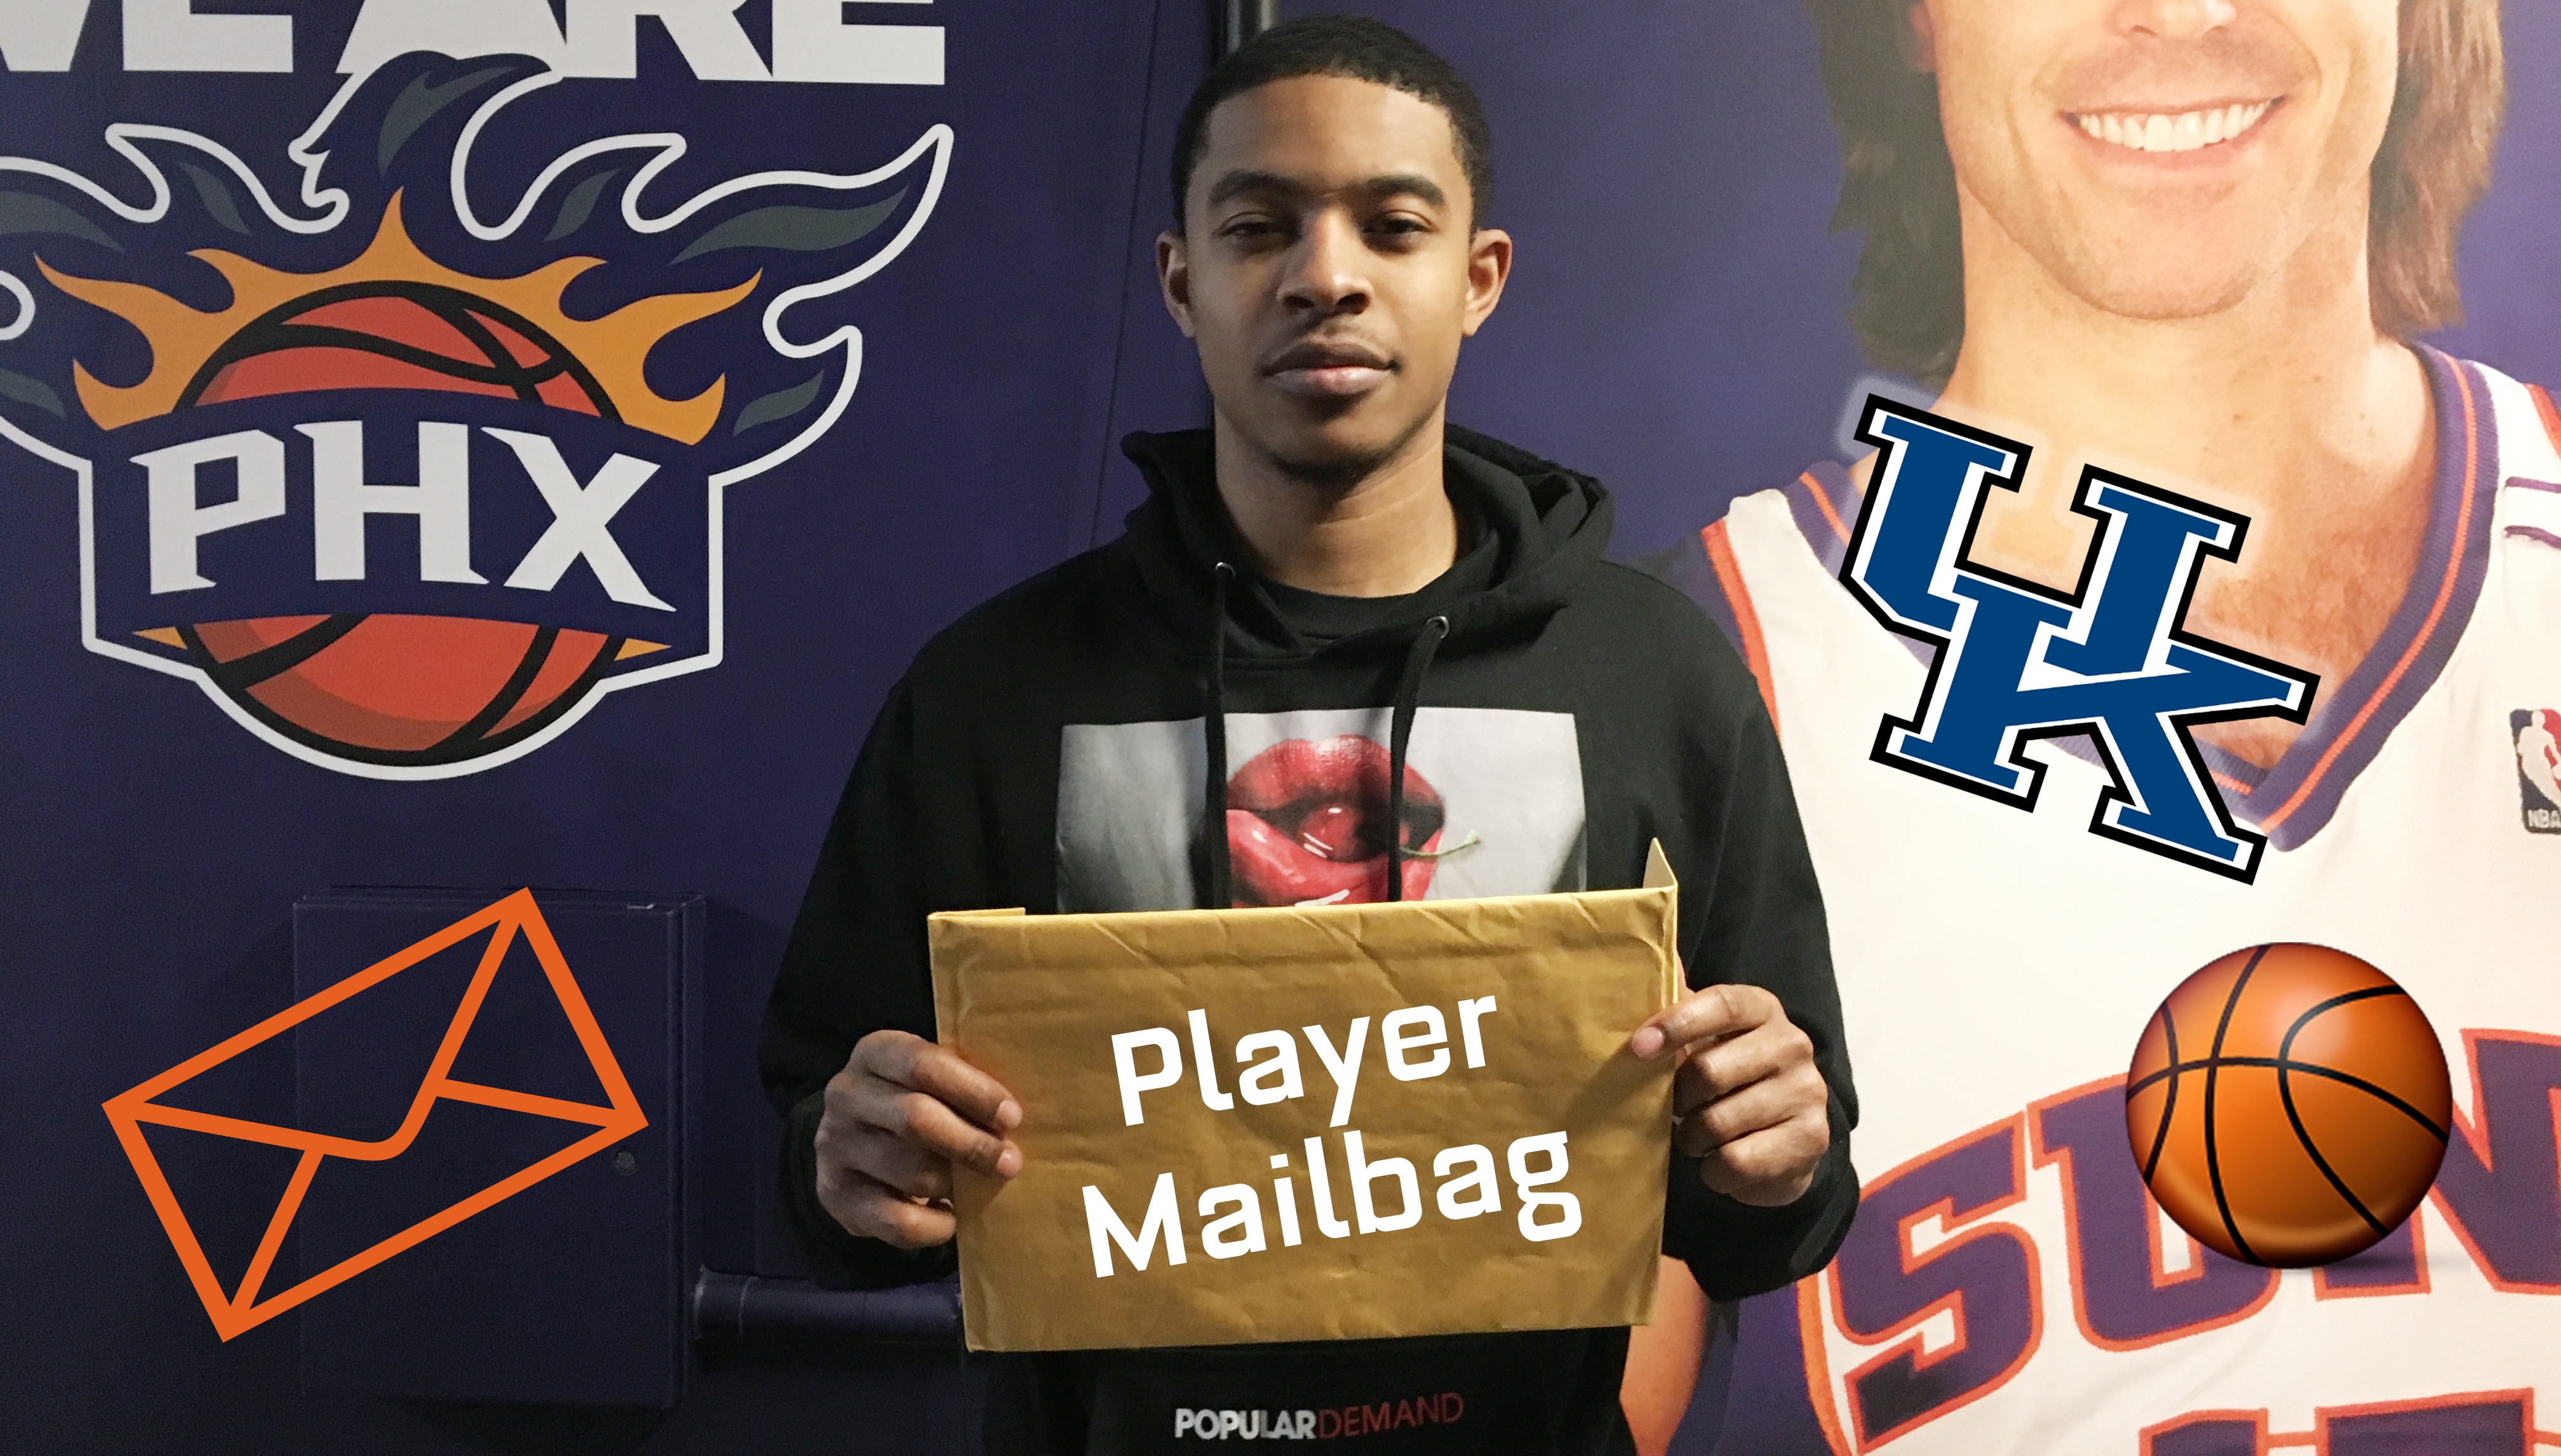 Player Mailbag: Tyler Ulis Discusses Kentucky Memories Sneakers and More